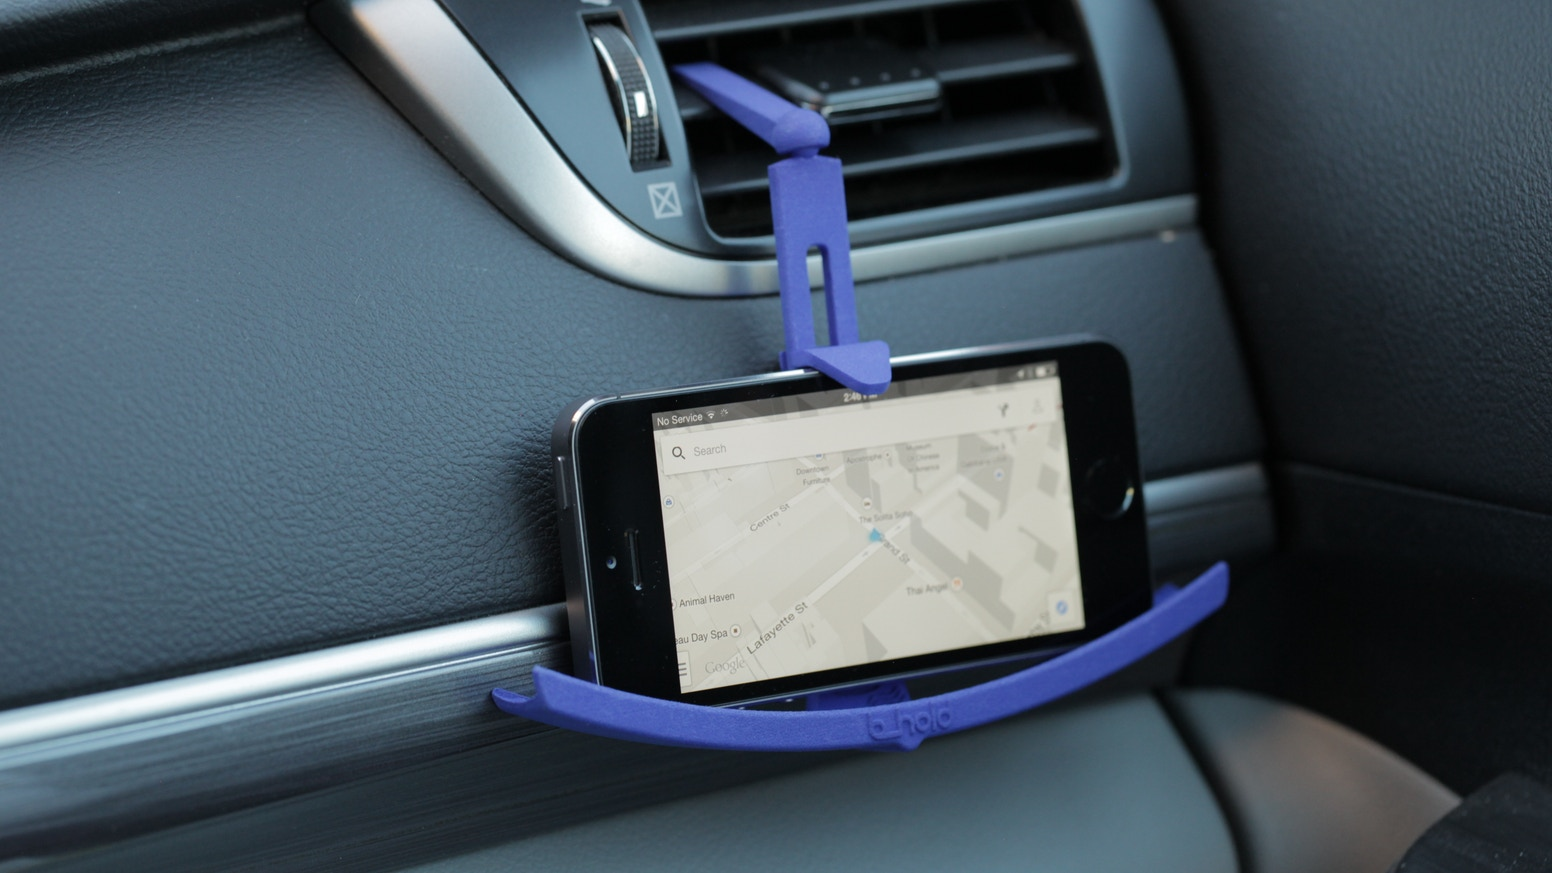 Drive safer and hands free with this universal curved design that secures any phone in any car.